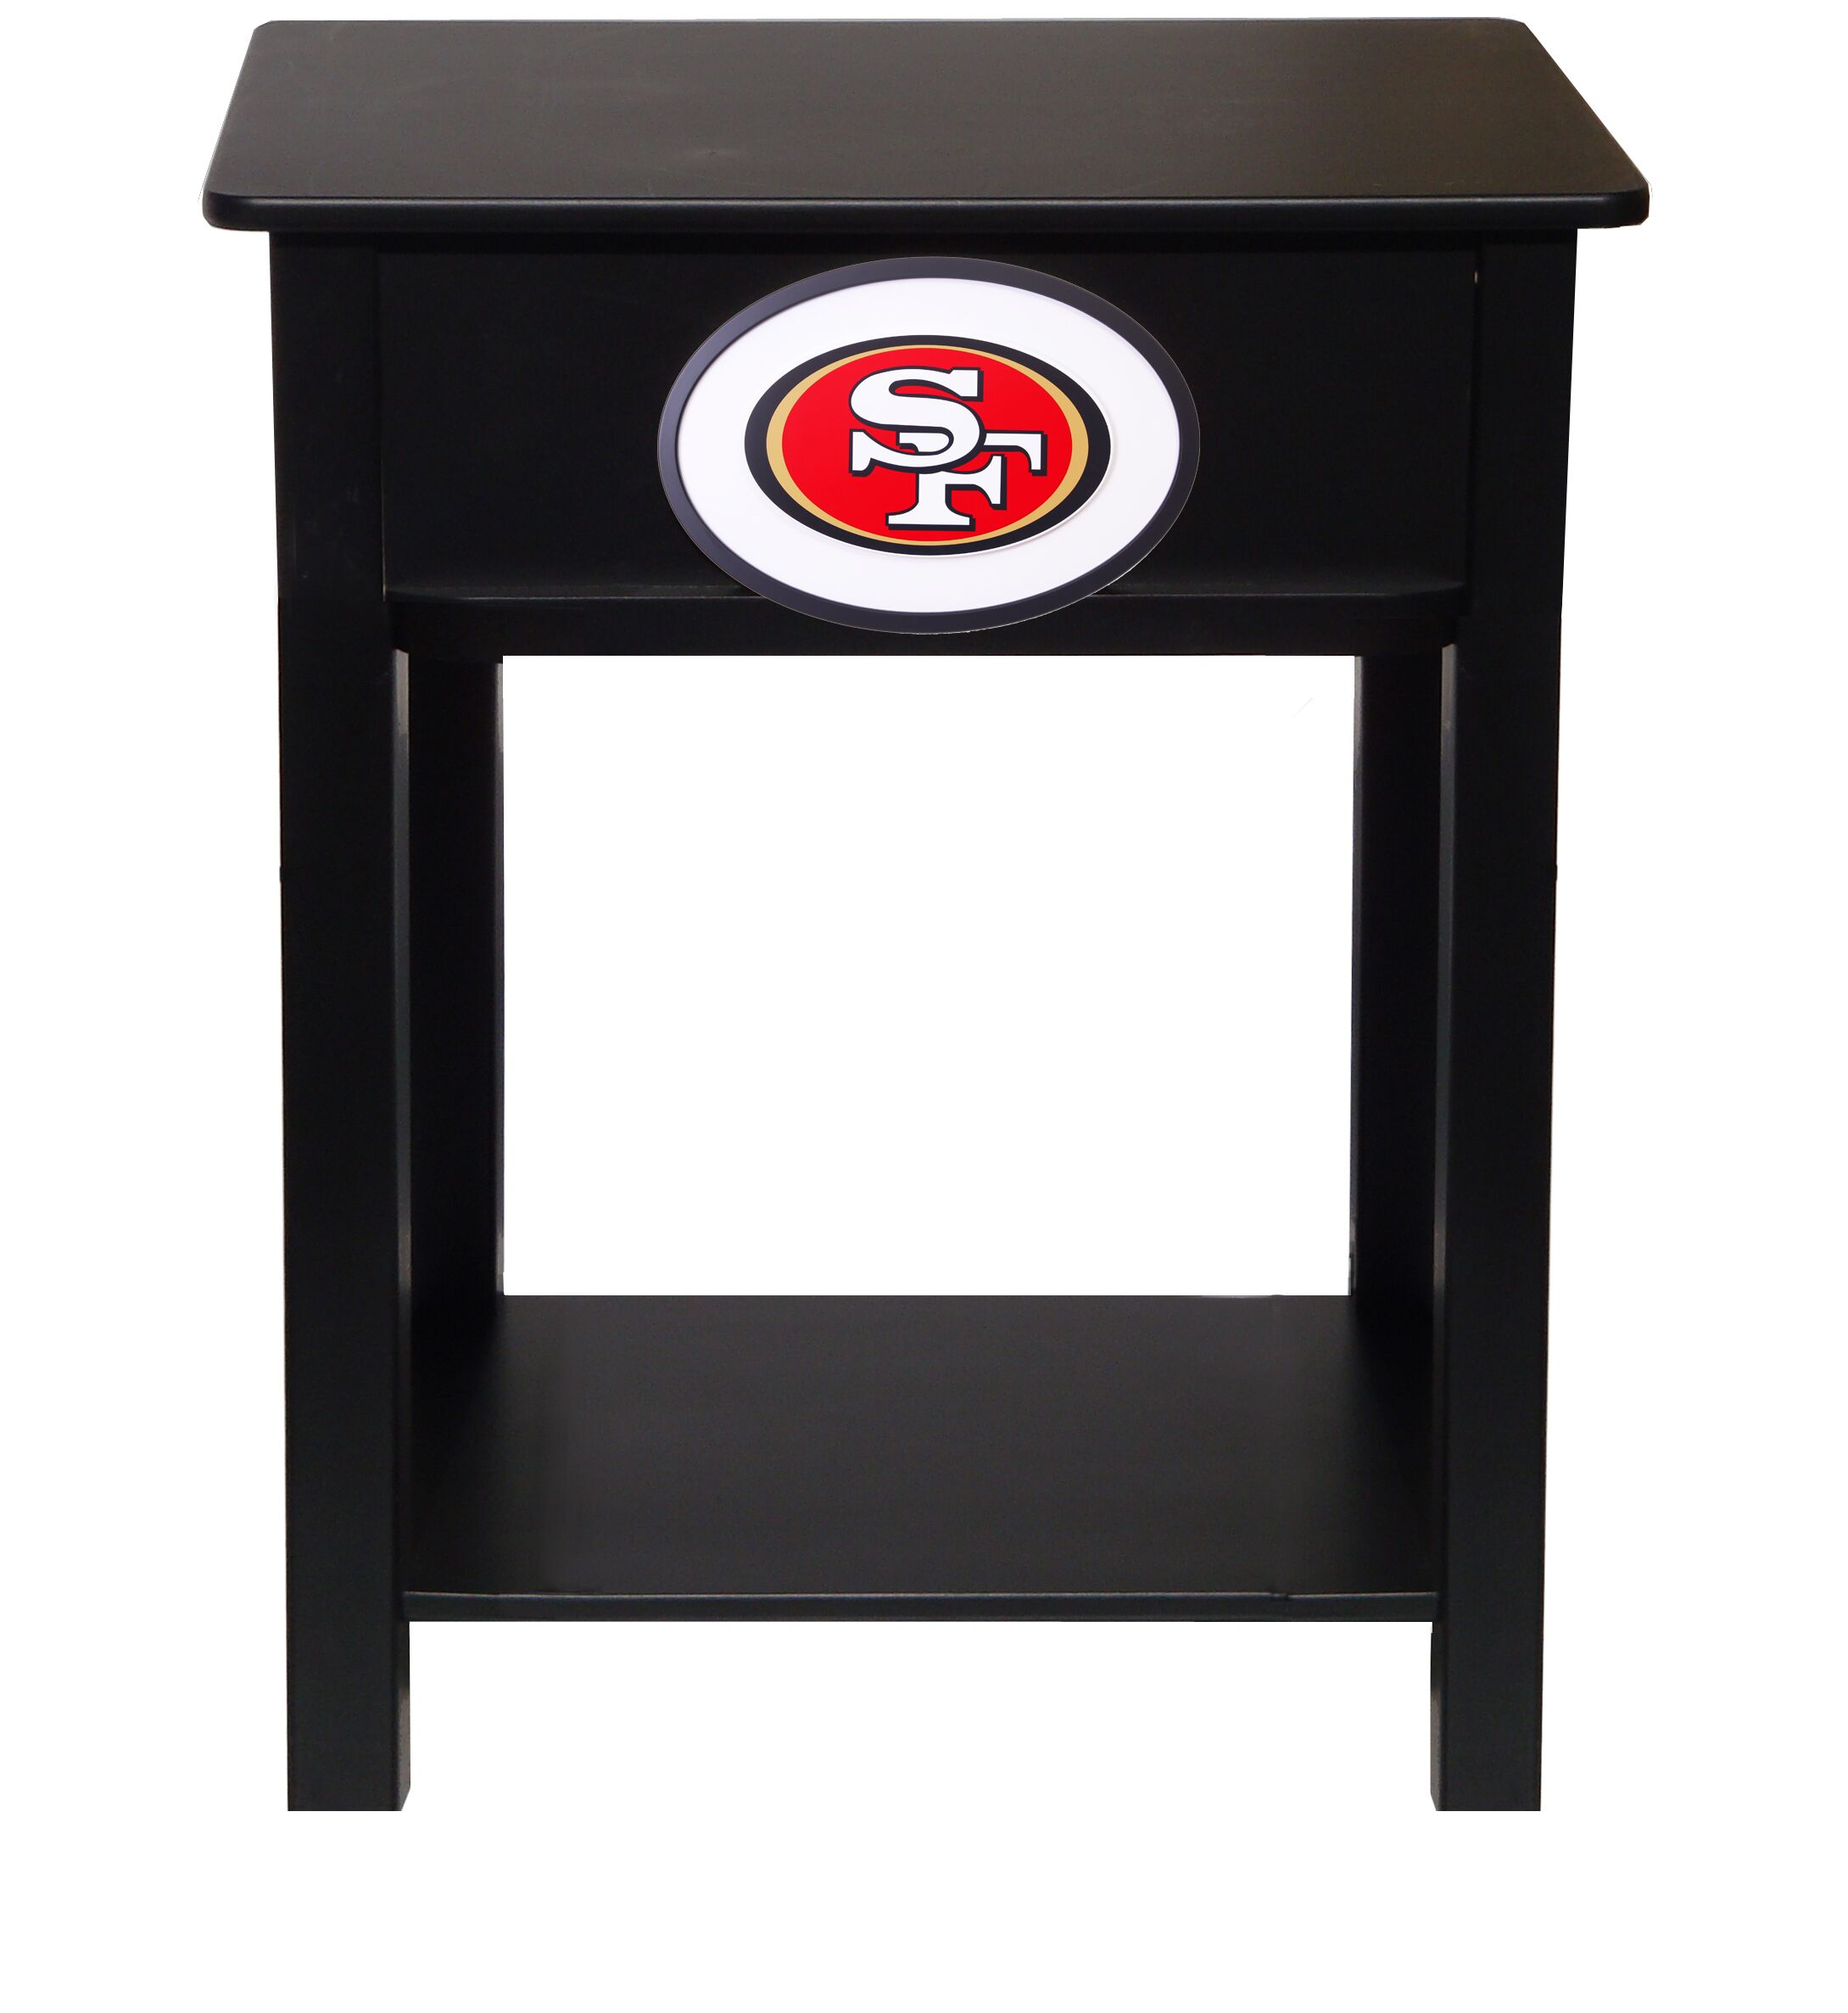 Nfl End Table With Storage NFL Team: San Francisco 49ers